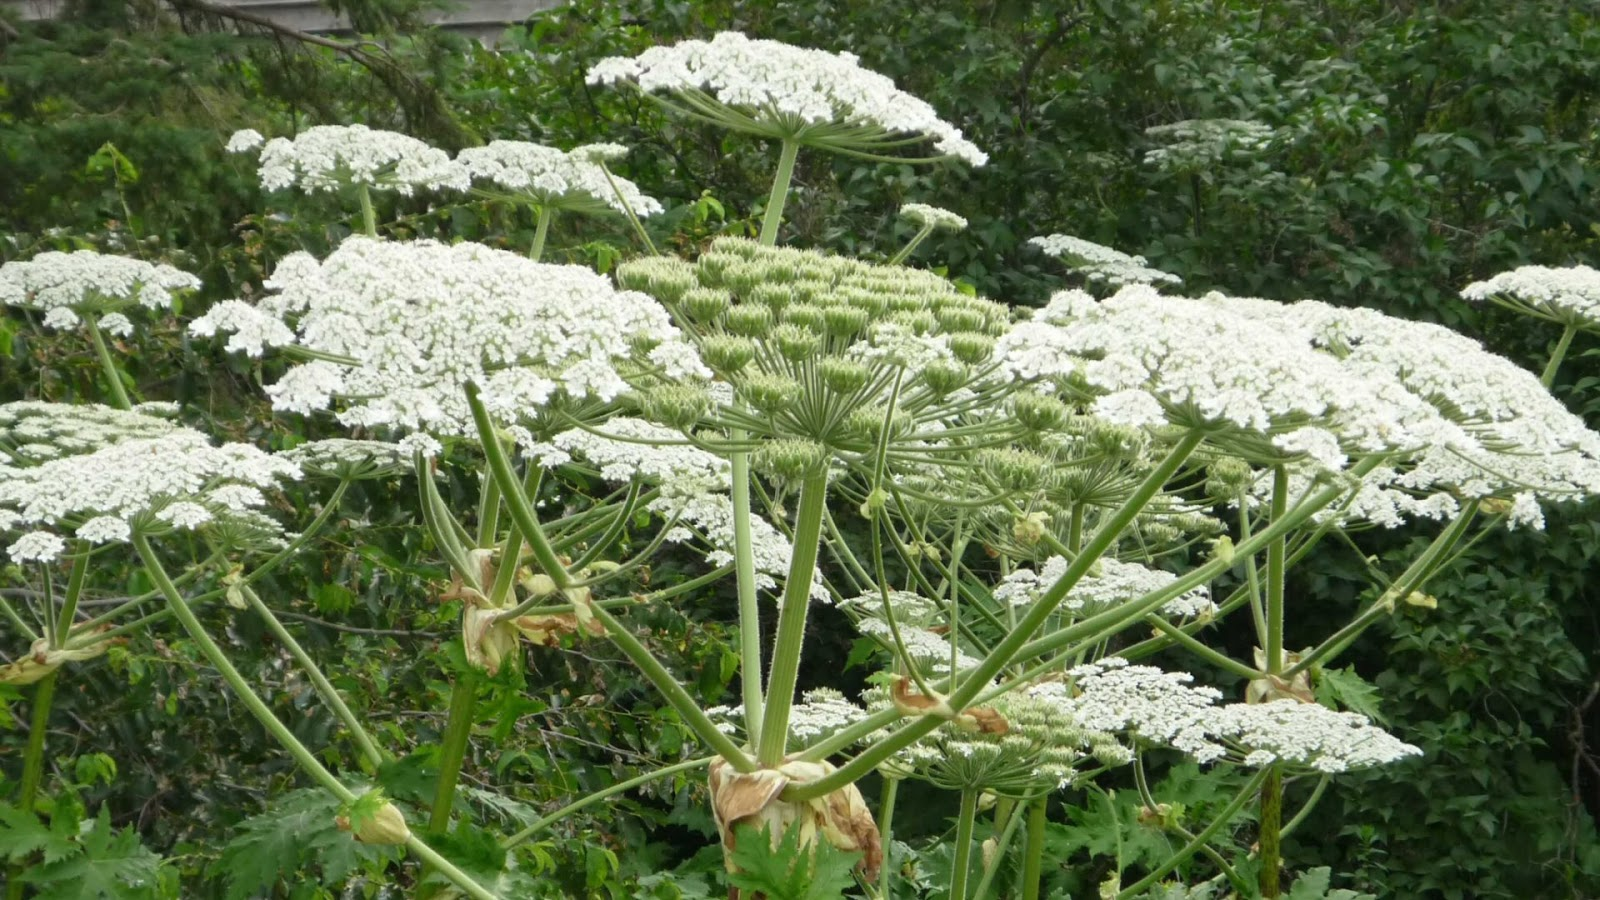 Giant hogweed, plant that causes visual deficiency and severe singeing, found in Virginia